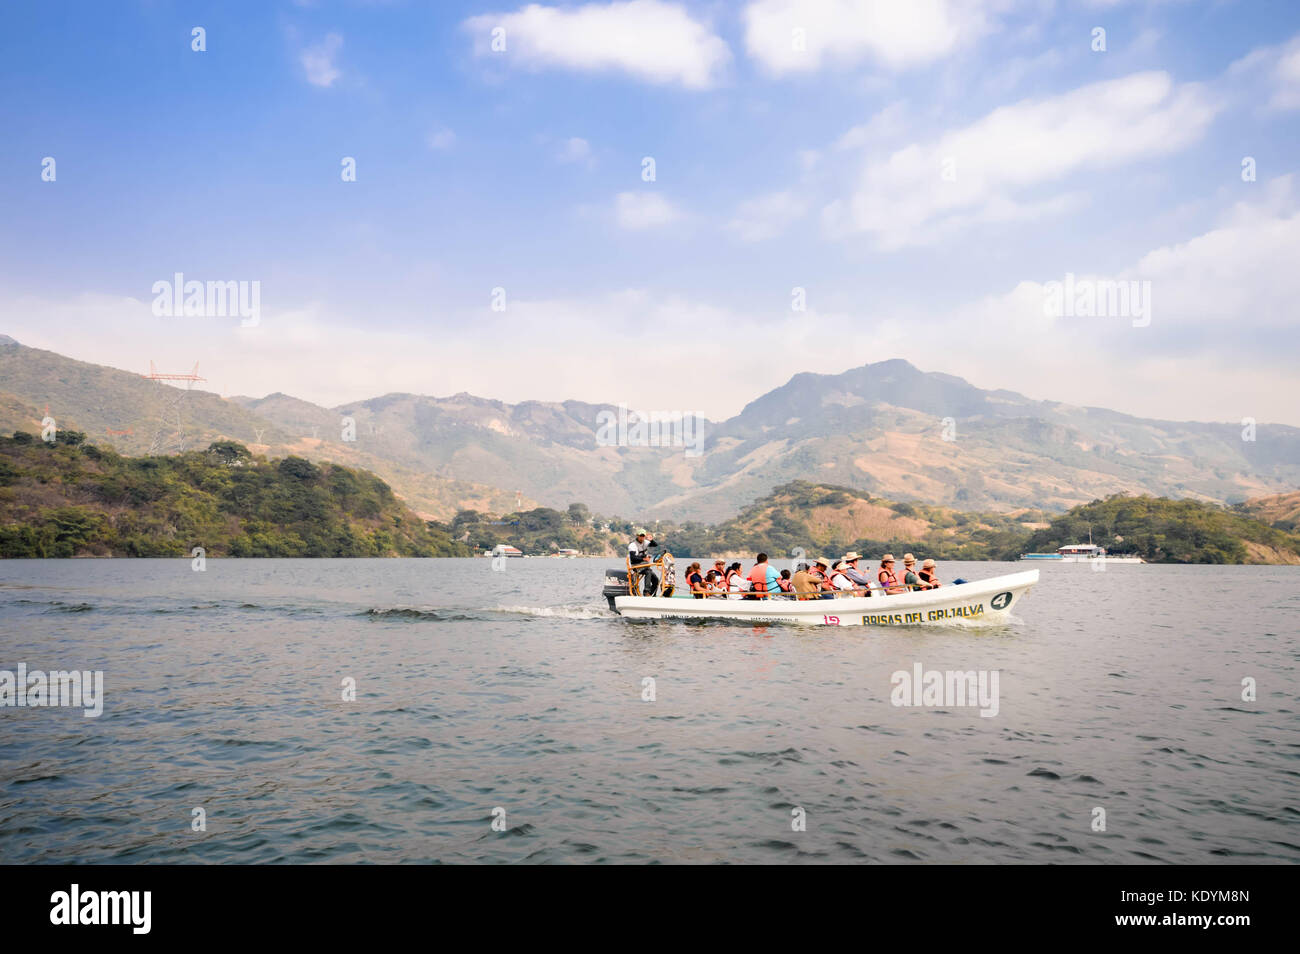 Tuxtla Gutierrez, Mexico - December 20, 2014: Motor boat carries tourists on a ride through the Canyons del Sumidero - Stock Image